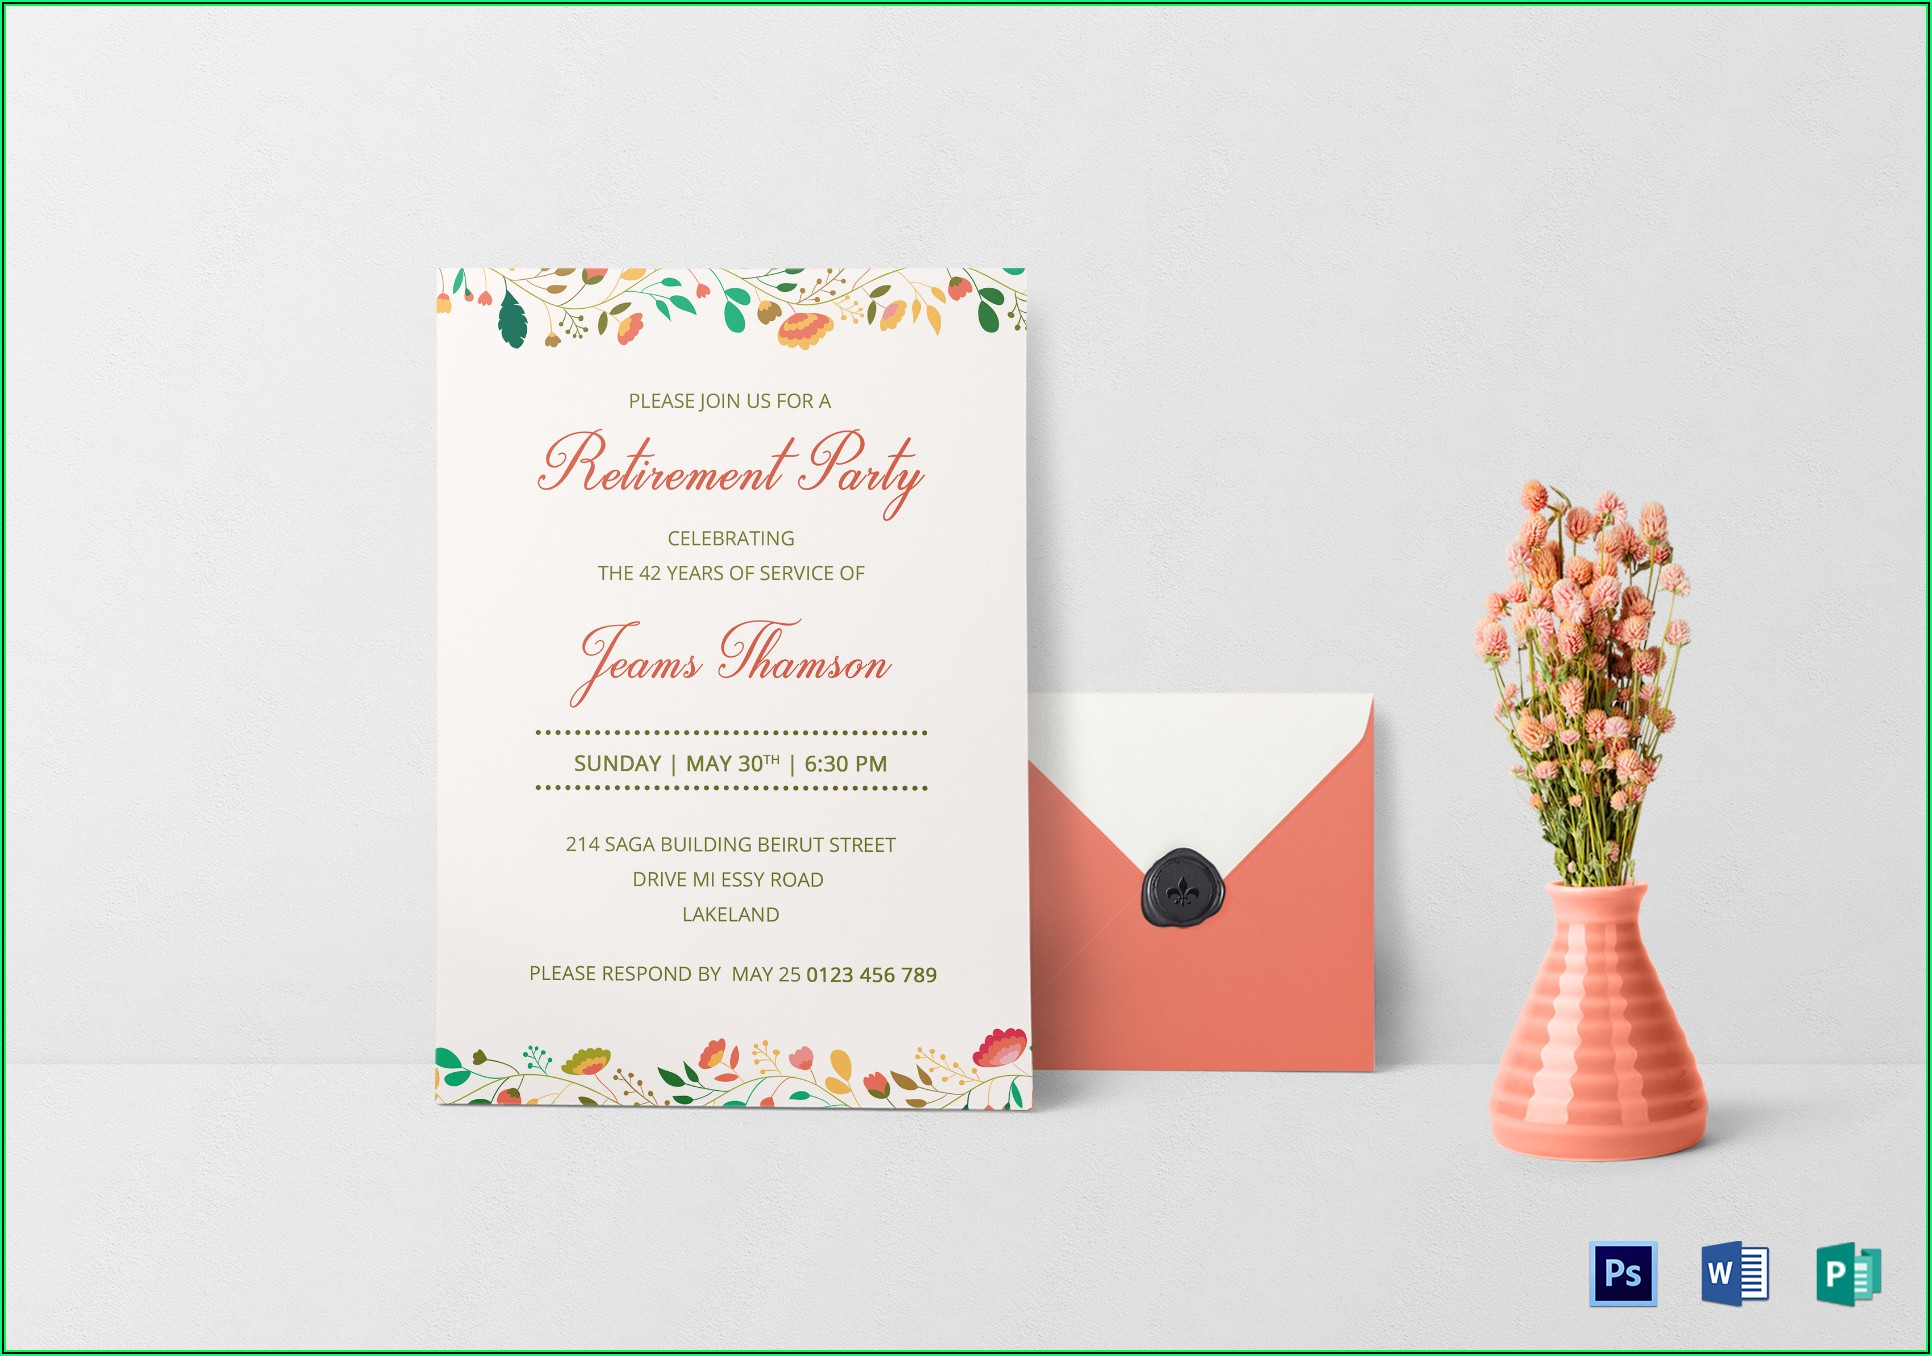 Retirement Party Template Publisher